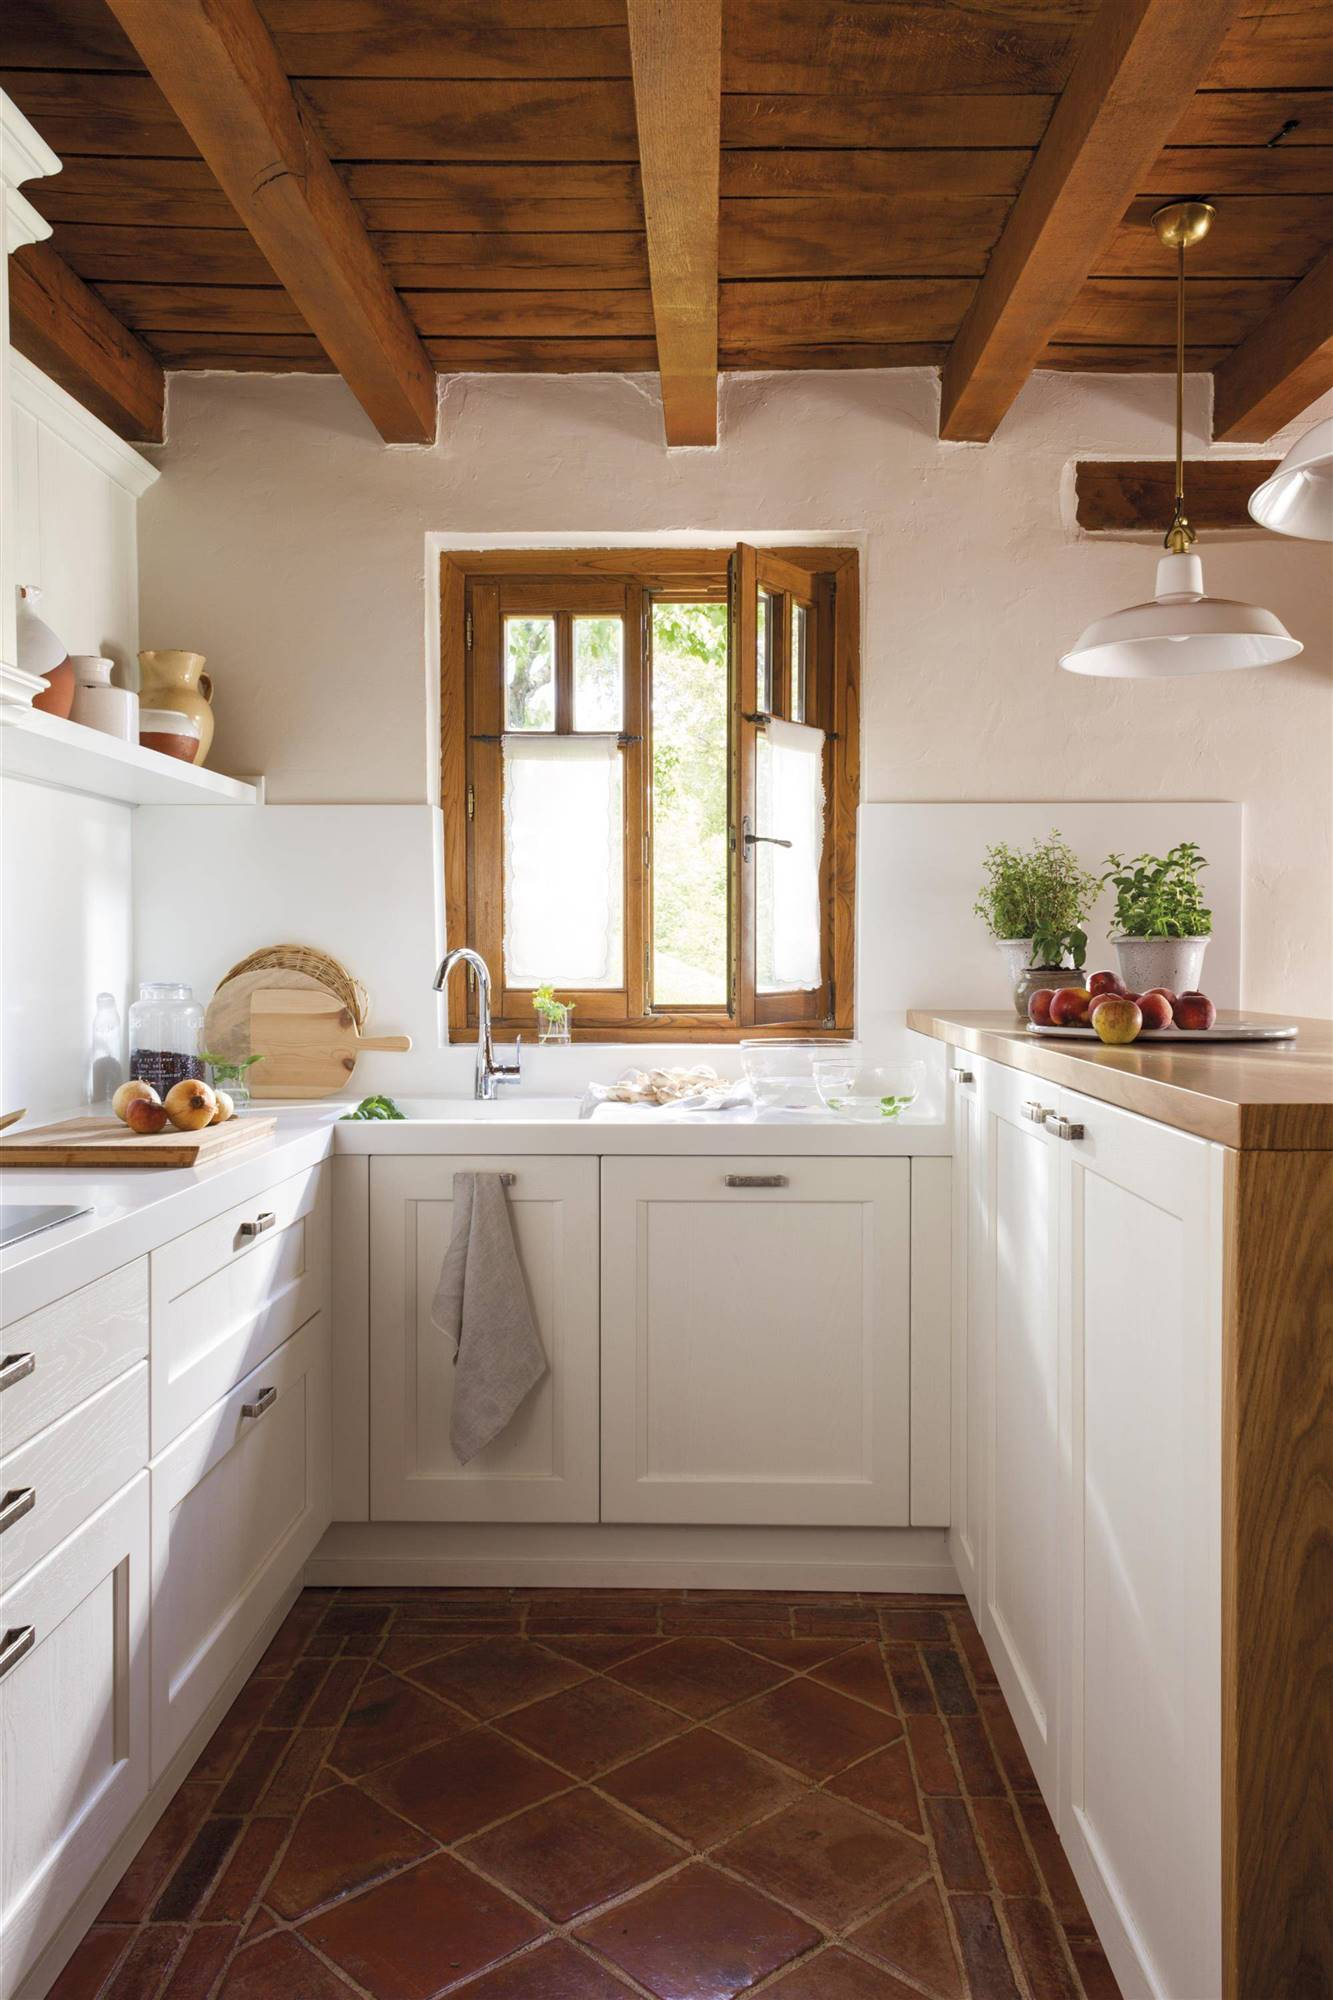 Small kitchen with wooden ceilings and windows, paved floors and white kitchen cabinets- 461030. 9. Wooden beams